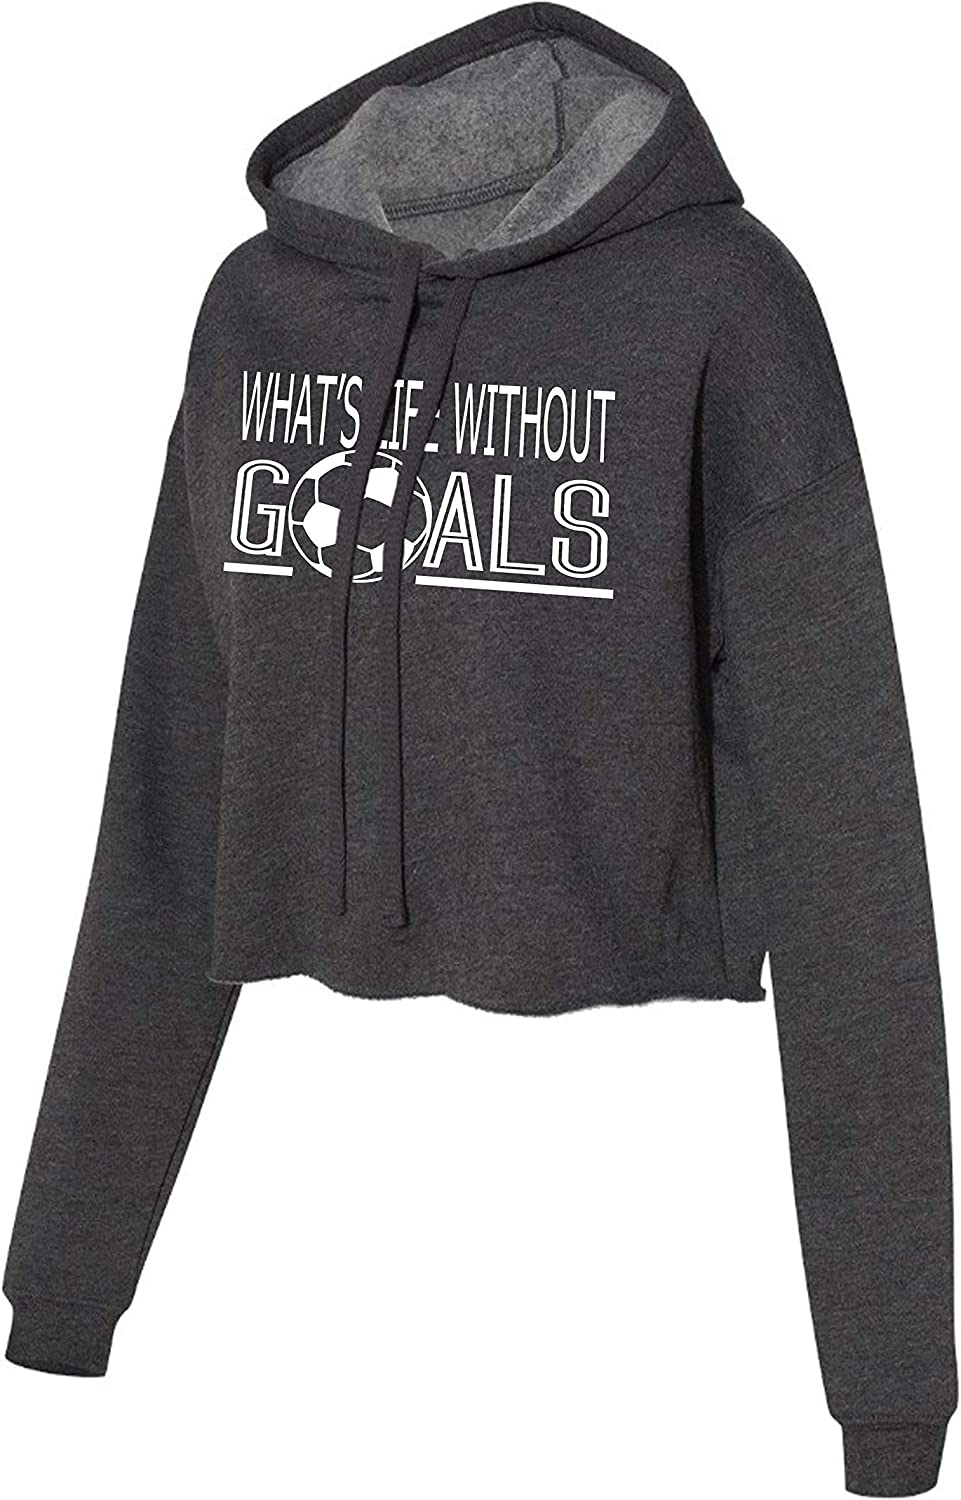 What's Life Without Goals Cropped Hoodie for Athletic Teen Girl